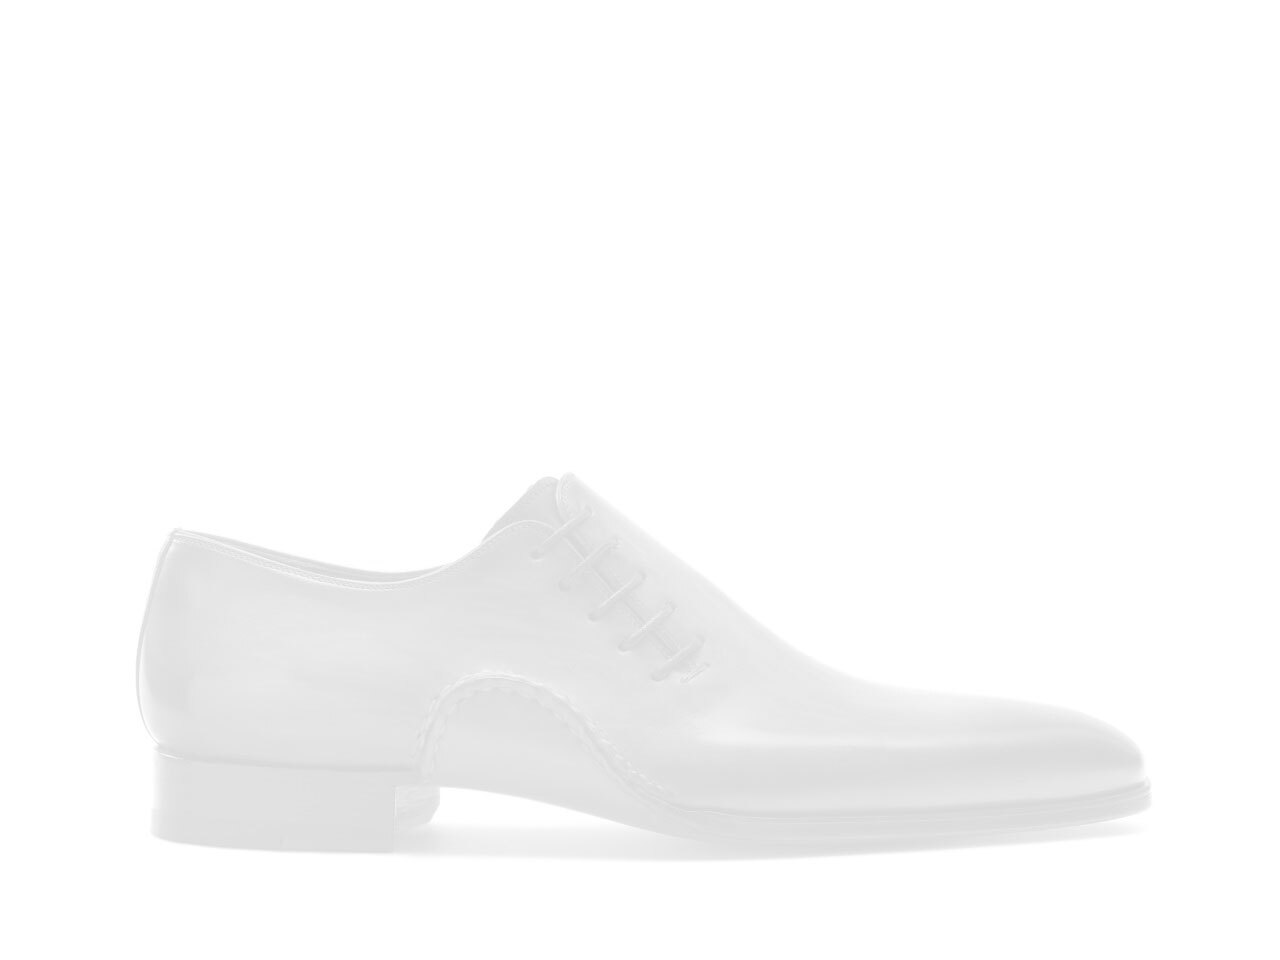 Side view of the Magnanni Arnoia White and Cuero Men's Sneakers